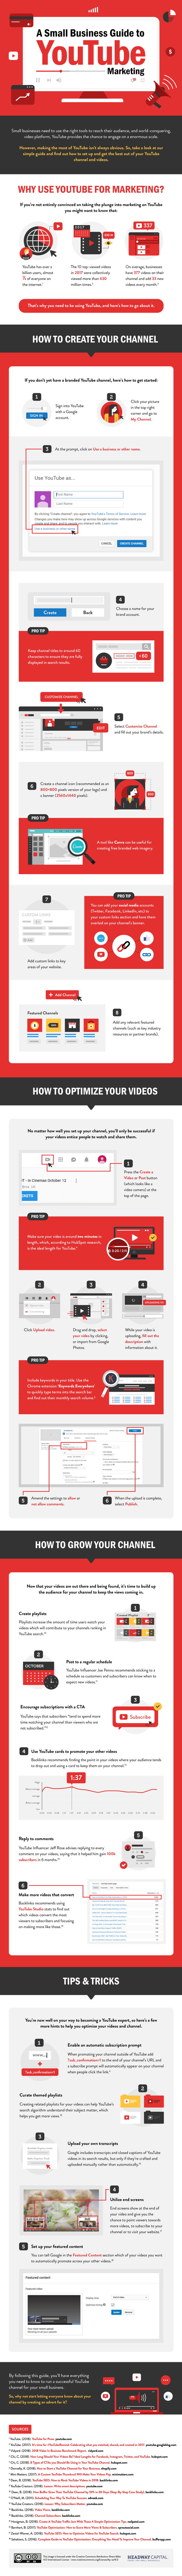 Infographic lists essential YouTube marketing tips